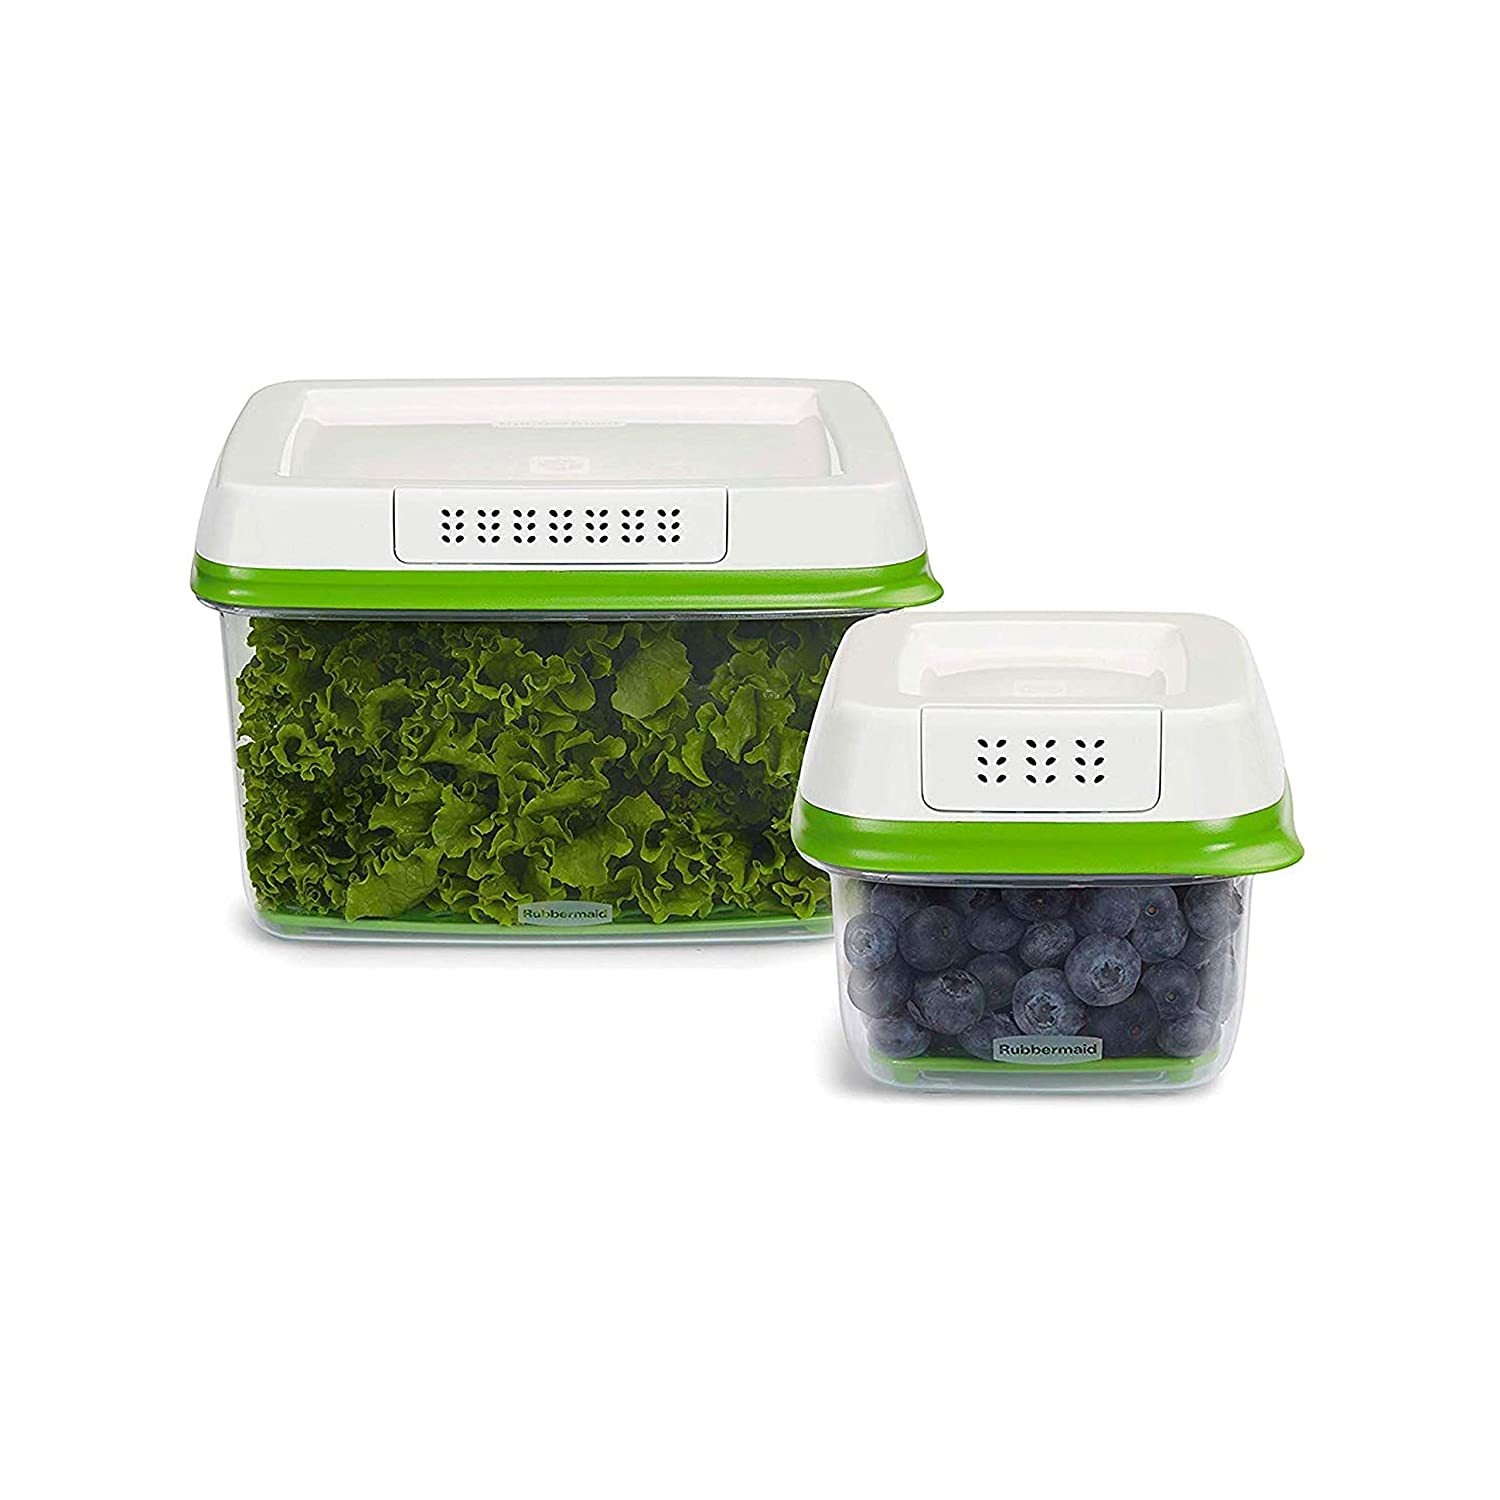 Rubbermaid 2101797 FreshWorks Produce Saver Food Storage Containers Set, 4-Piece